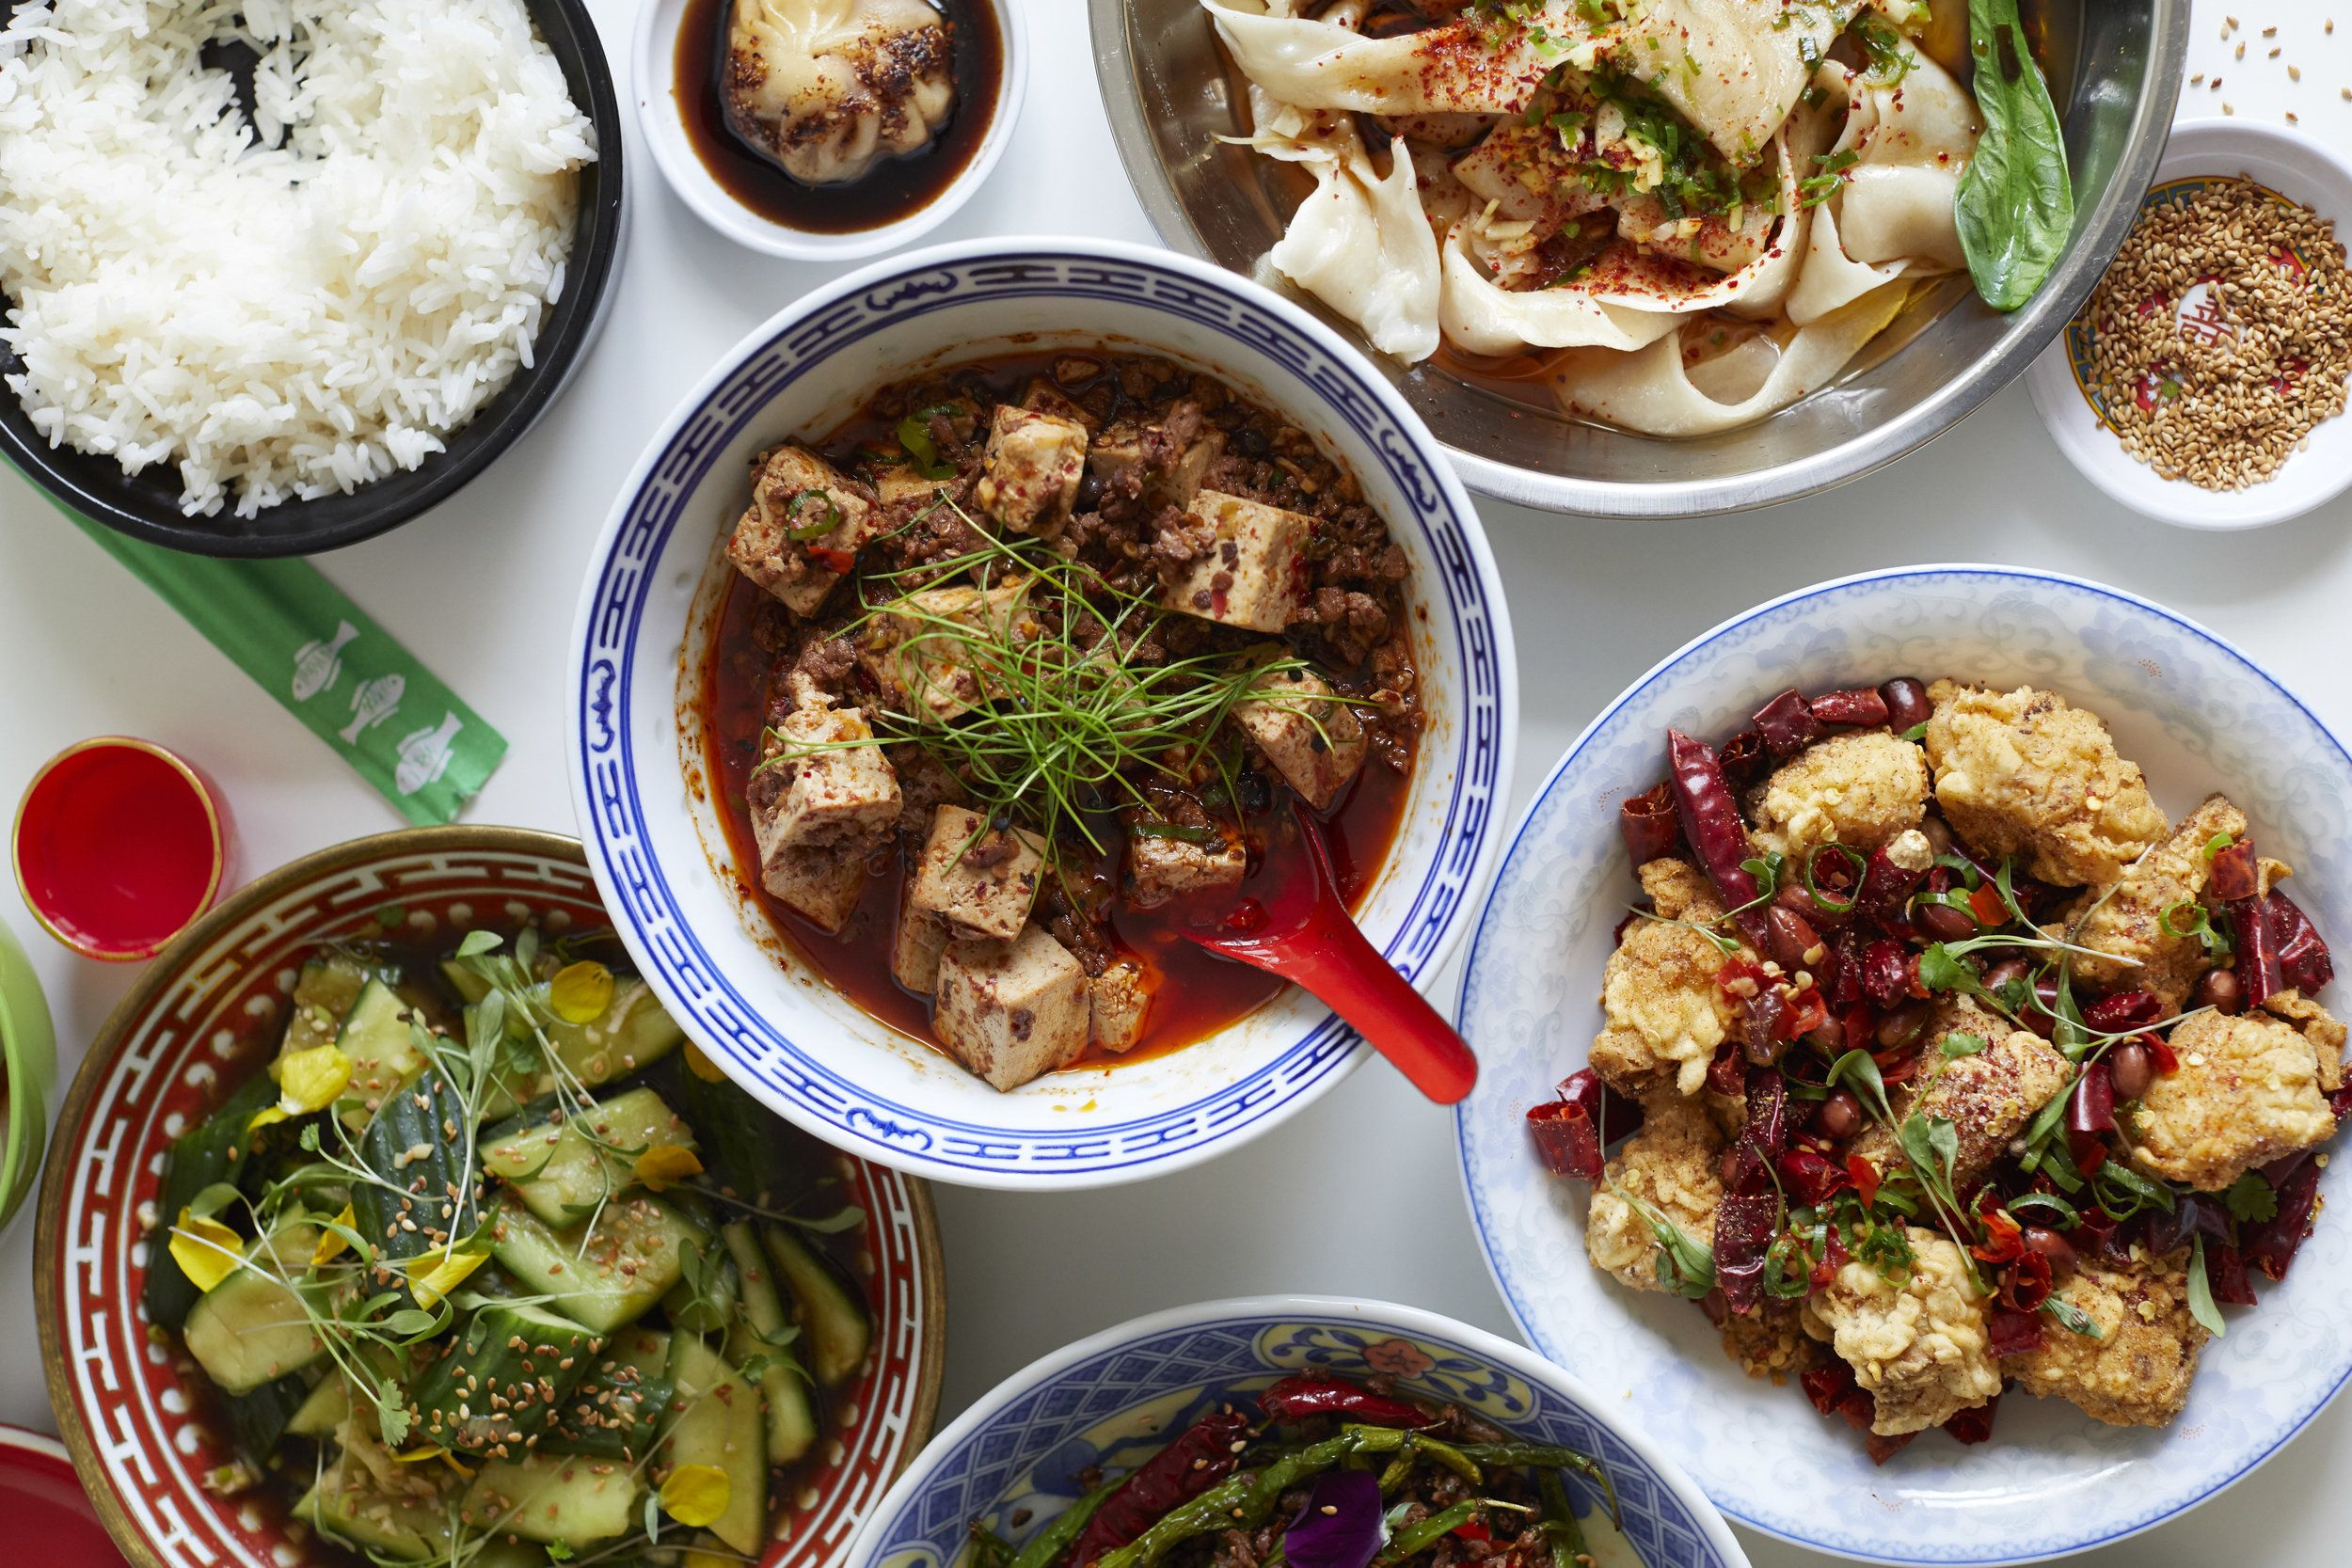 Mao chow vegan chinese food best meal delivery